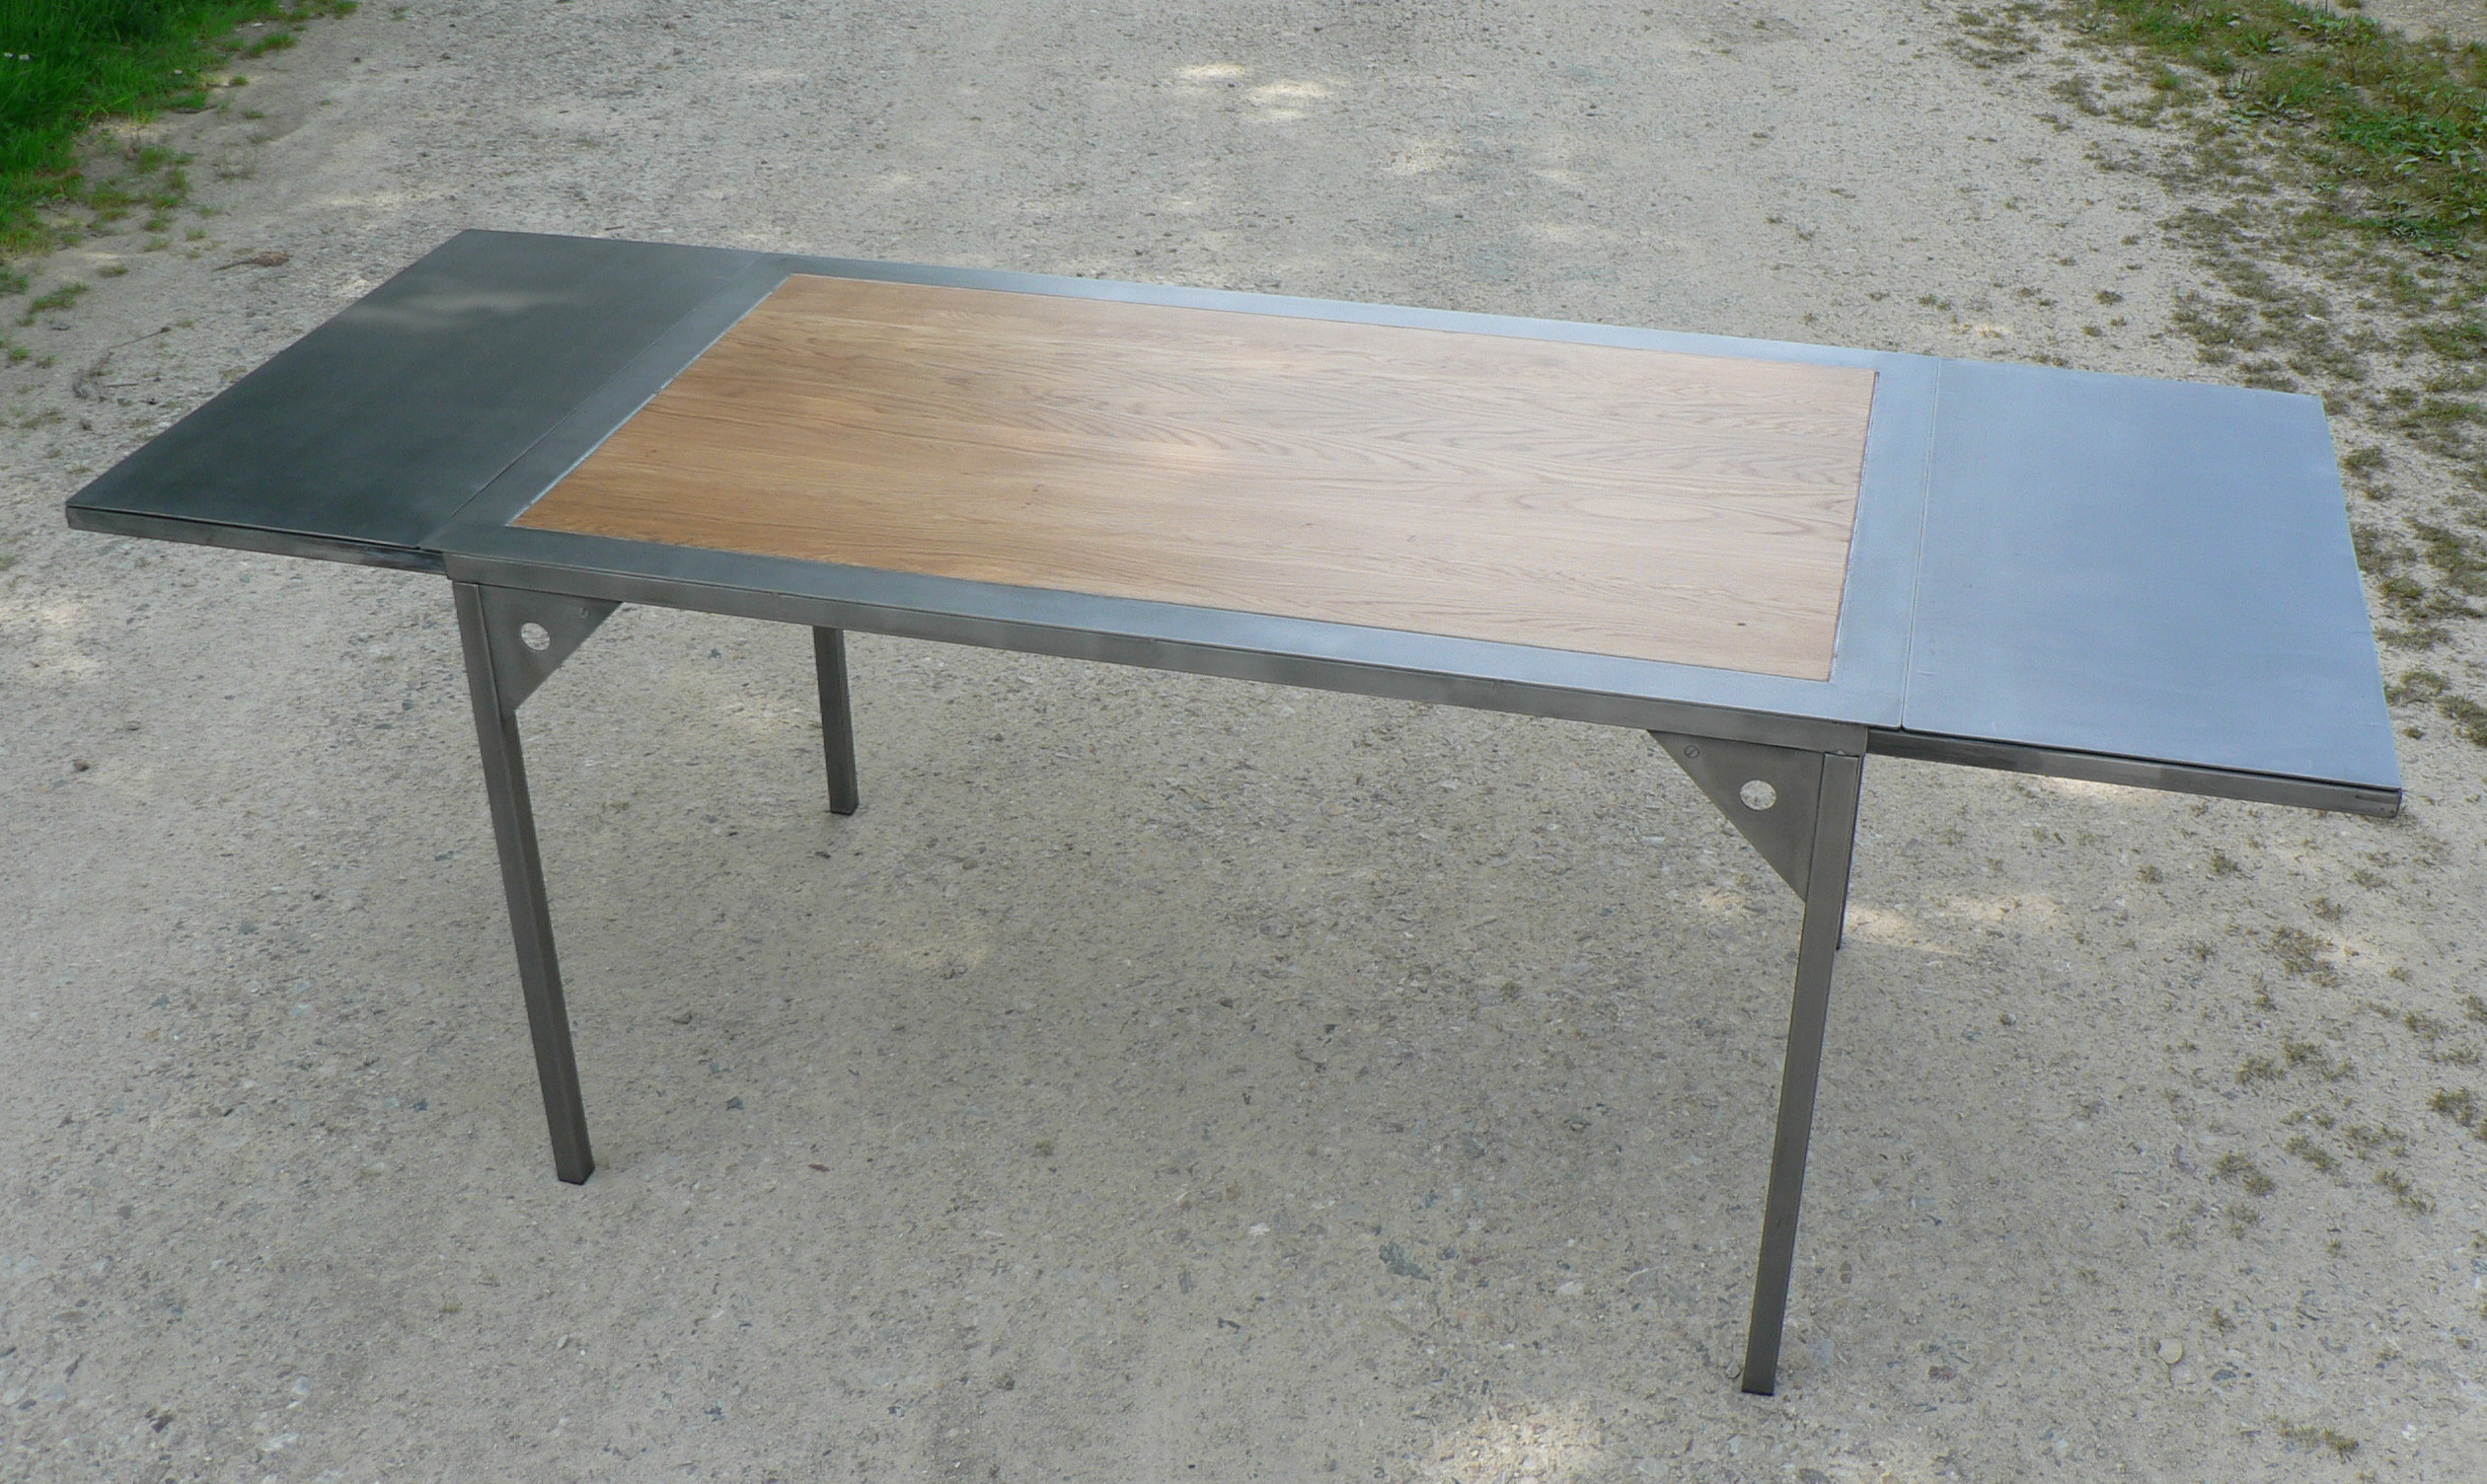 Table a rallonges design loft metal et bois for Table bois metal rallonge